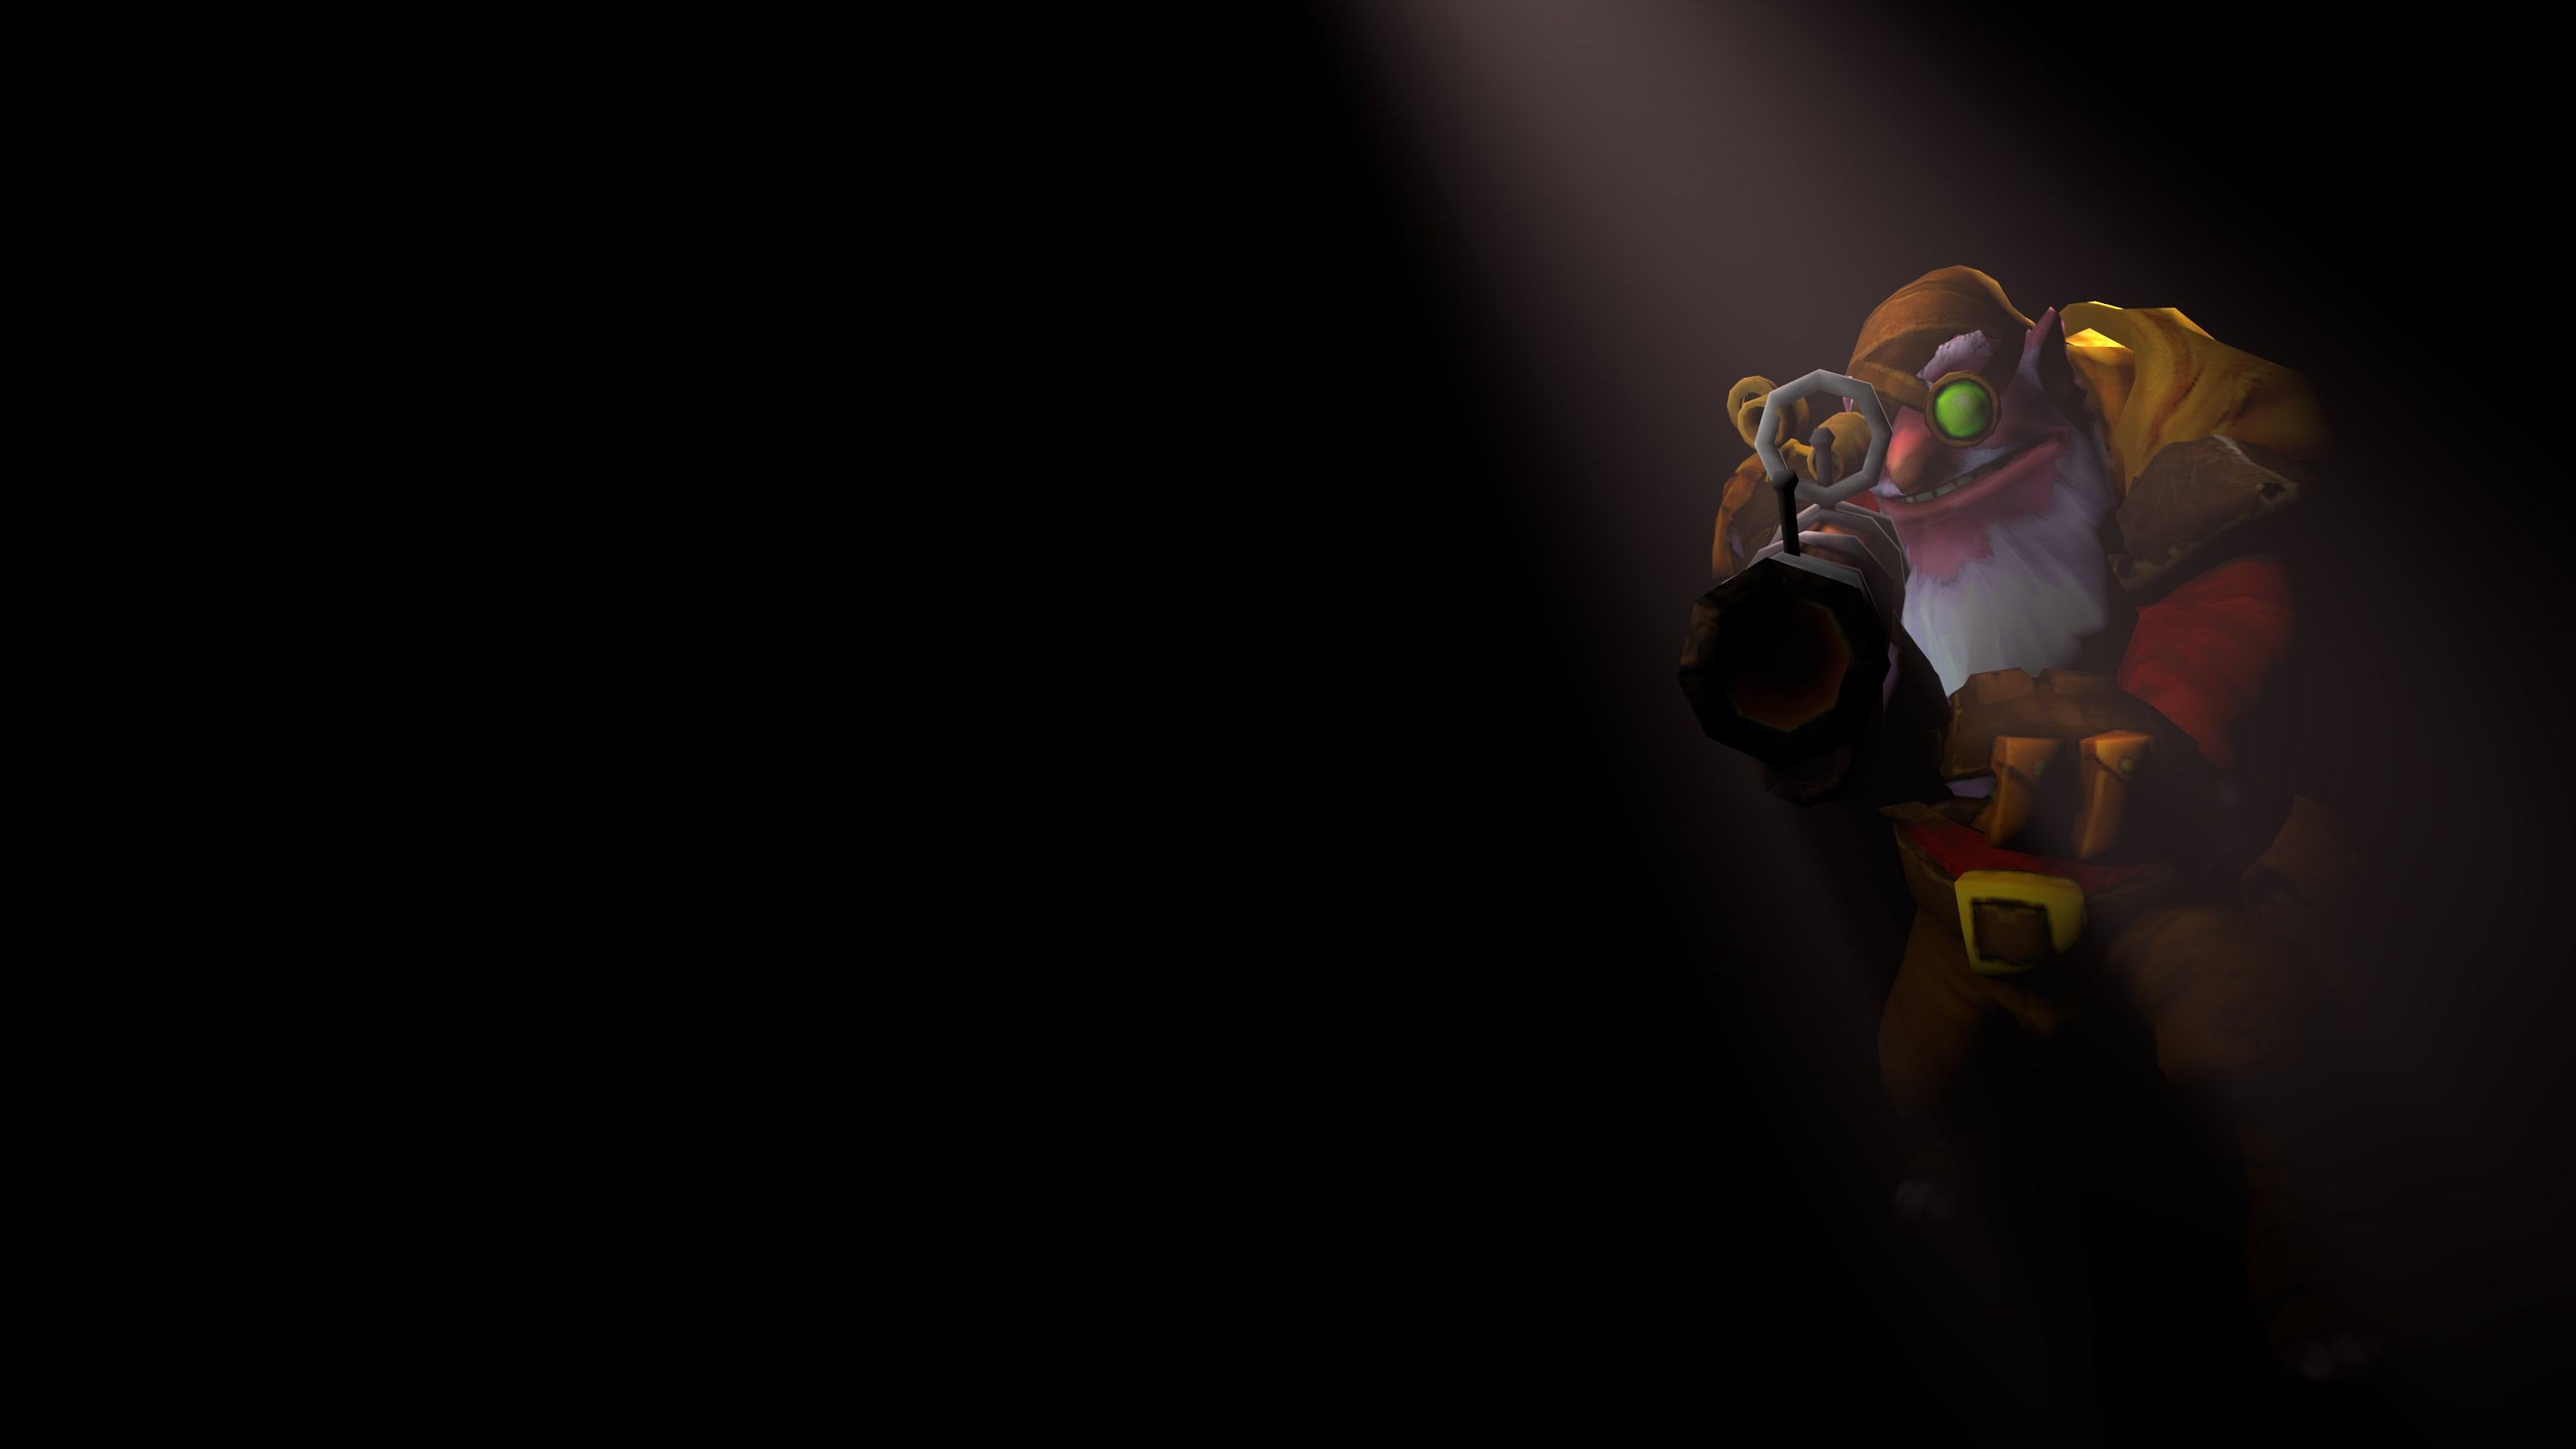 Dota2 : Sniper HQ wallpapers